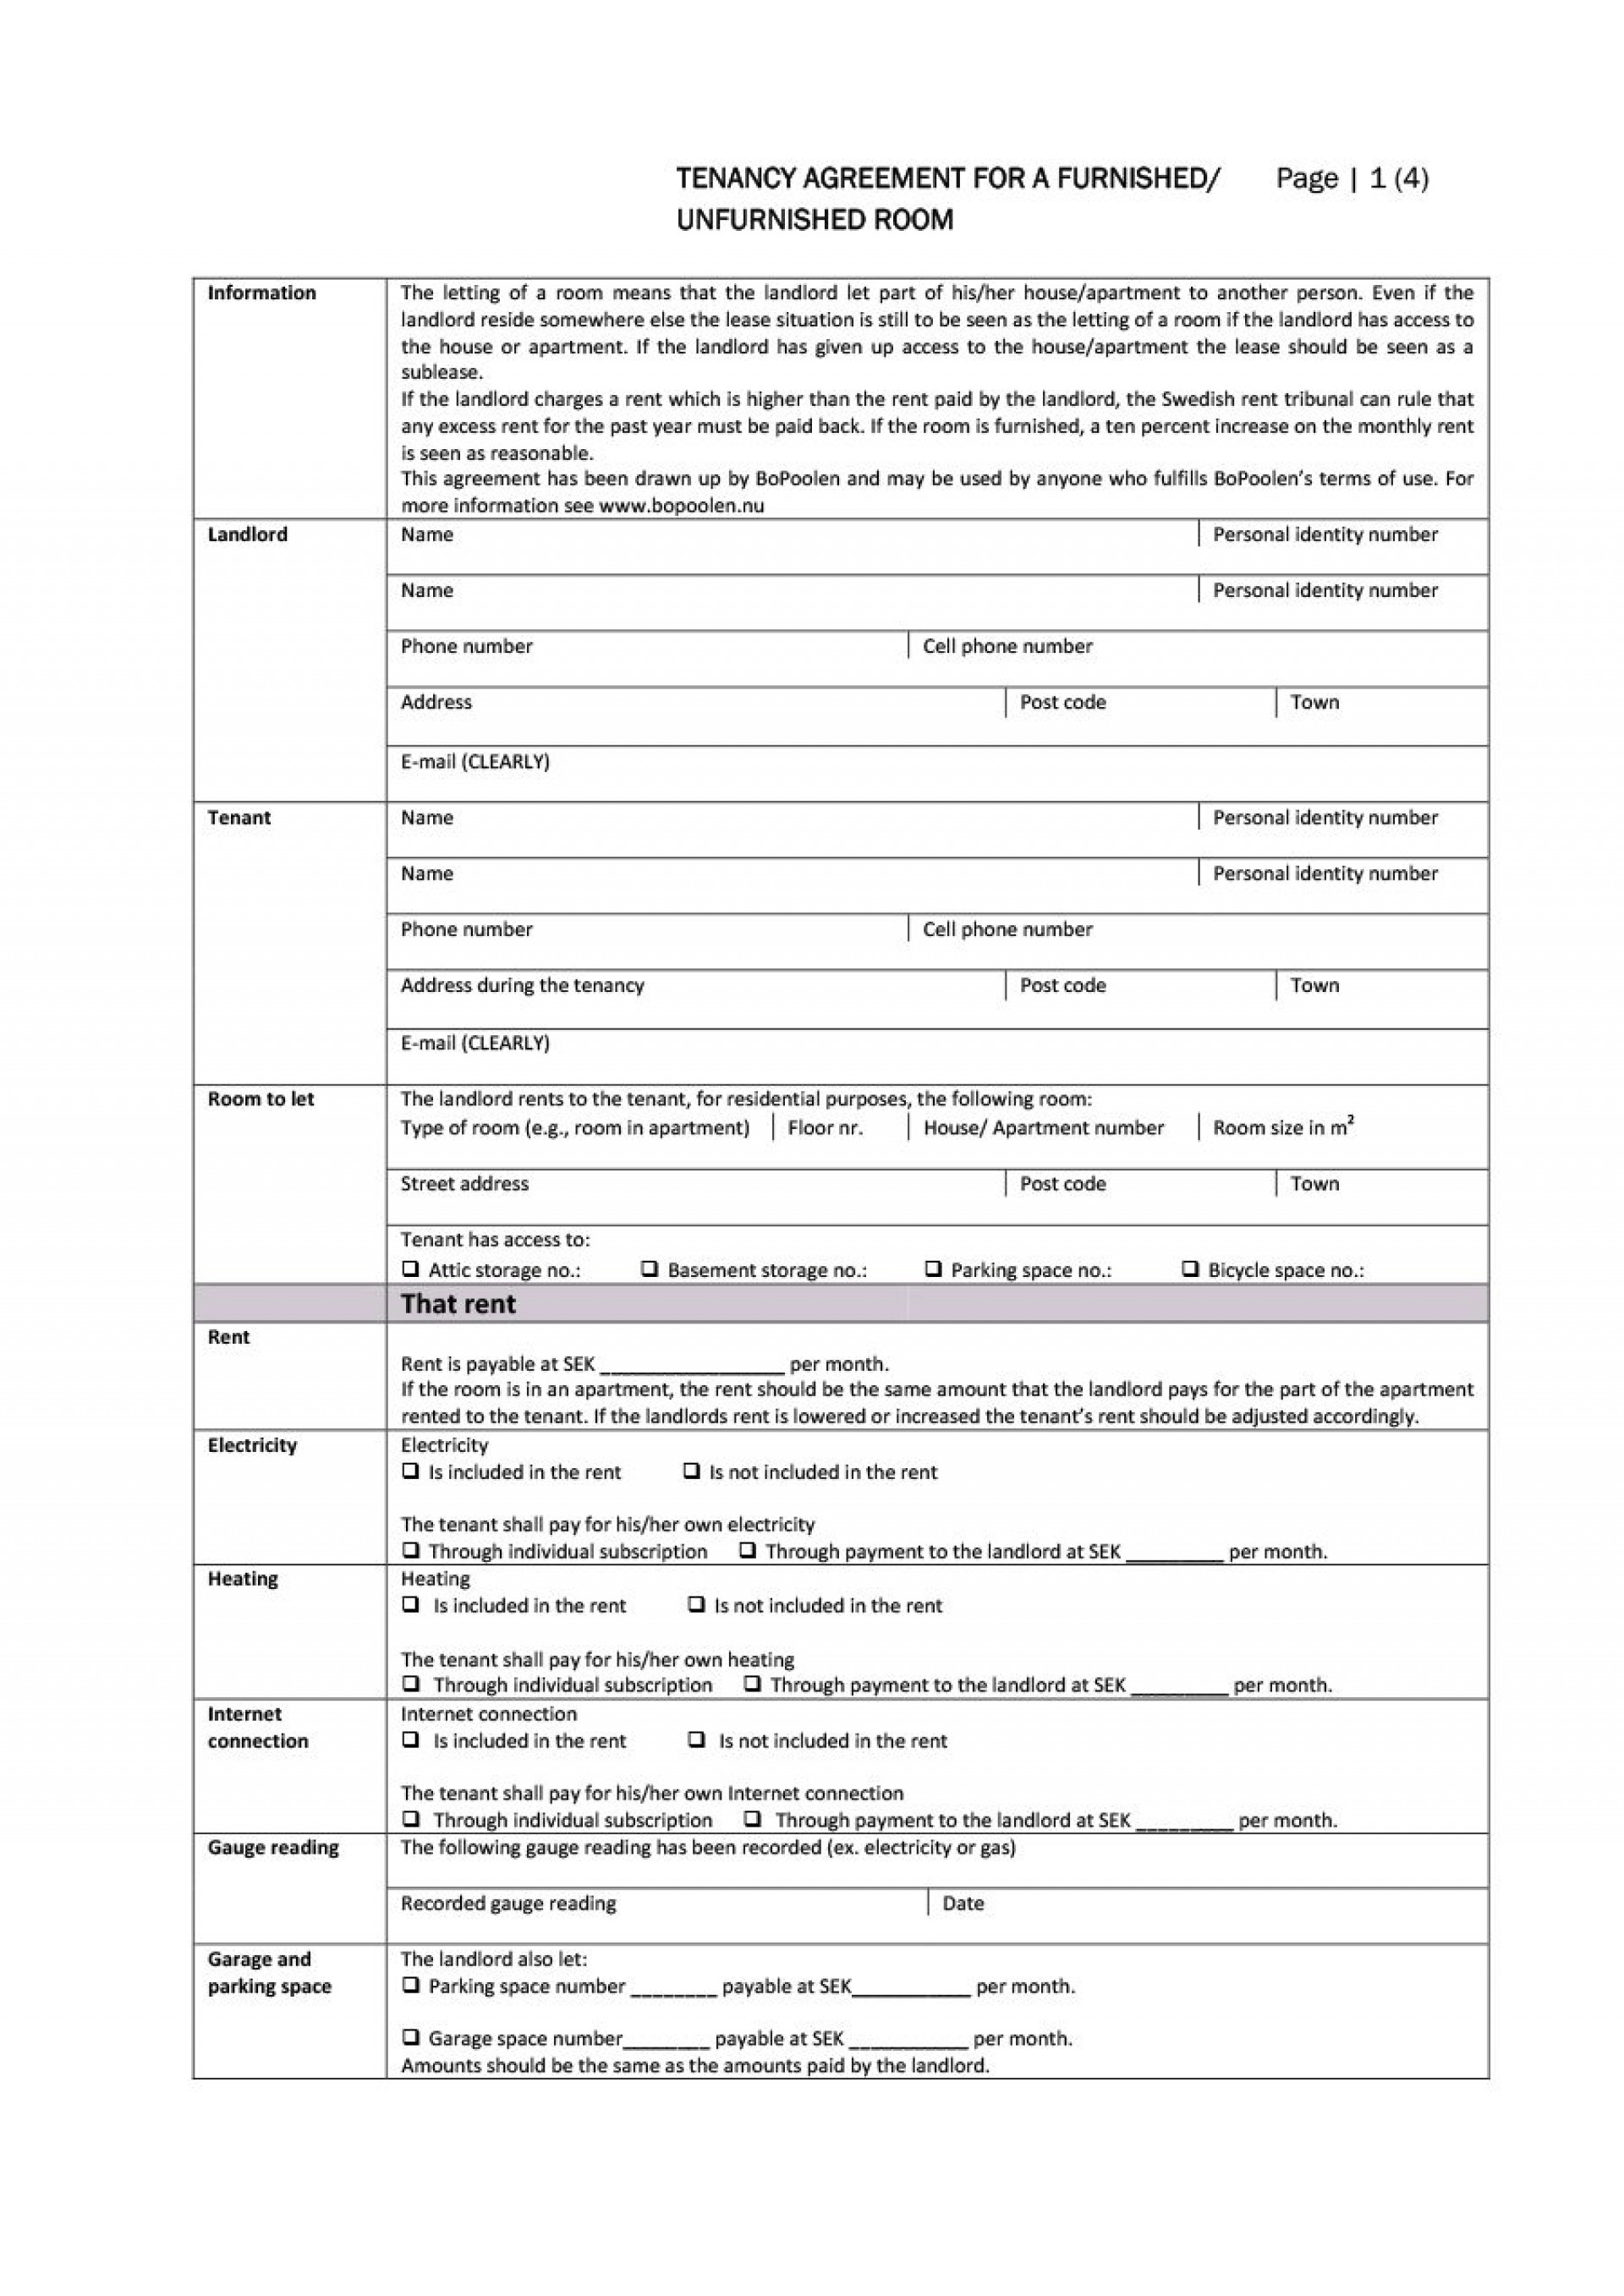 004 Top Room Rental Agreement Template Uk Free High Resolution  Word Doc1920